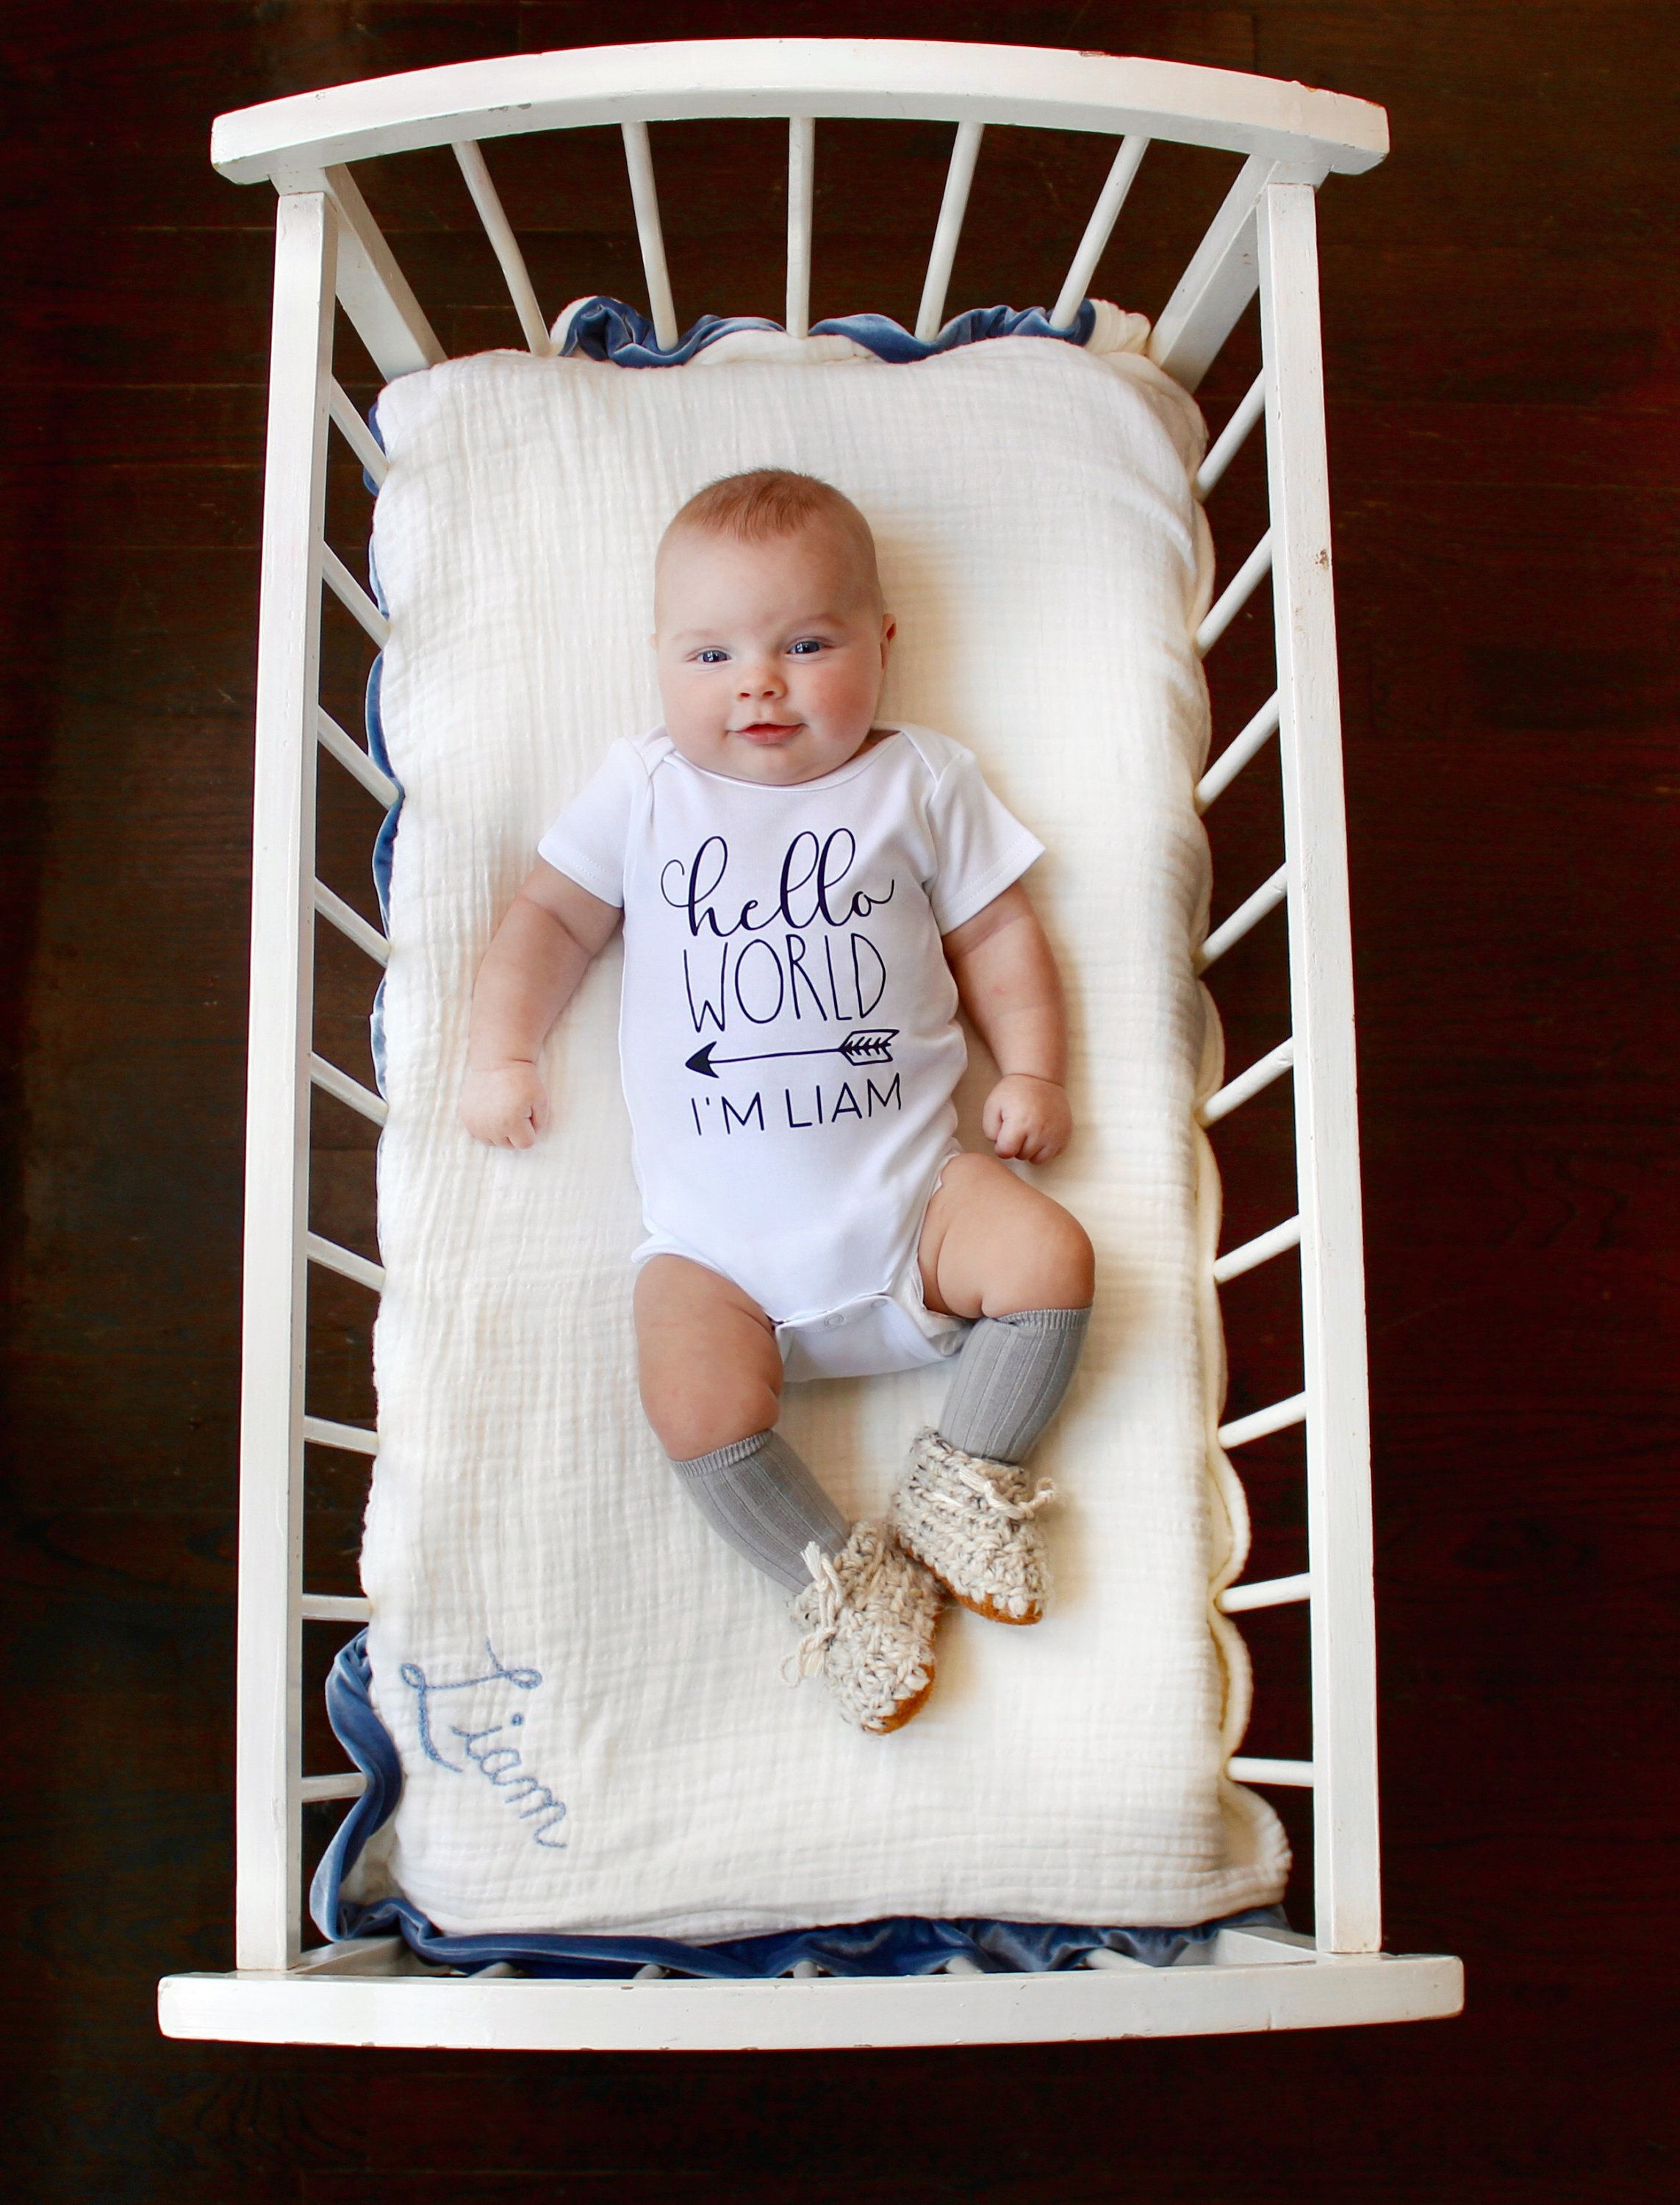 Hello World Personalized Newborn Bodysuit | Coming Home Outfit | Gift for New Baby | Baby Shower Gift #newbaby #helloworld #cominghomeoutfit #babyonesie #babyshowergift